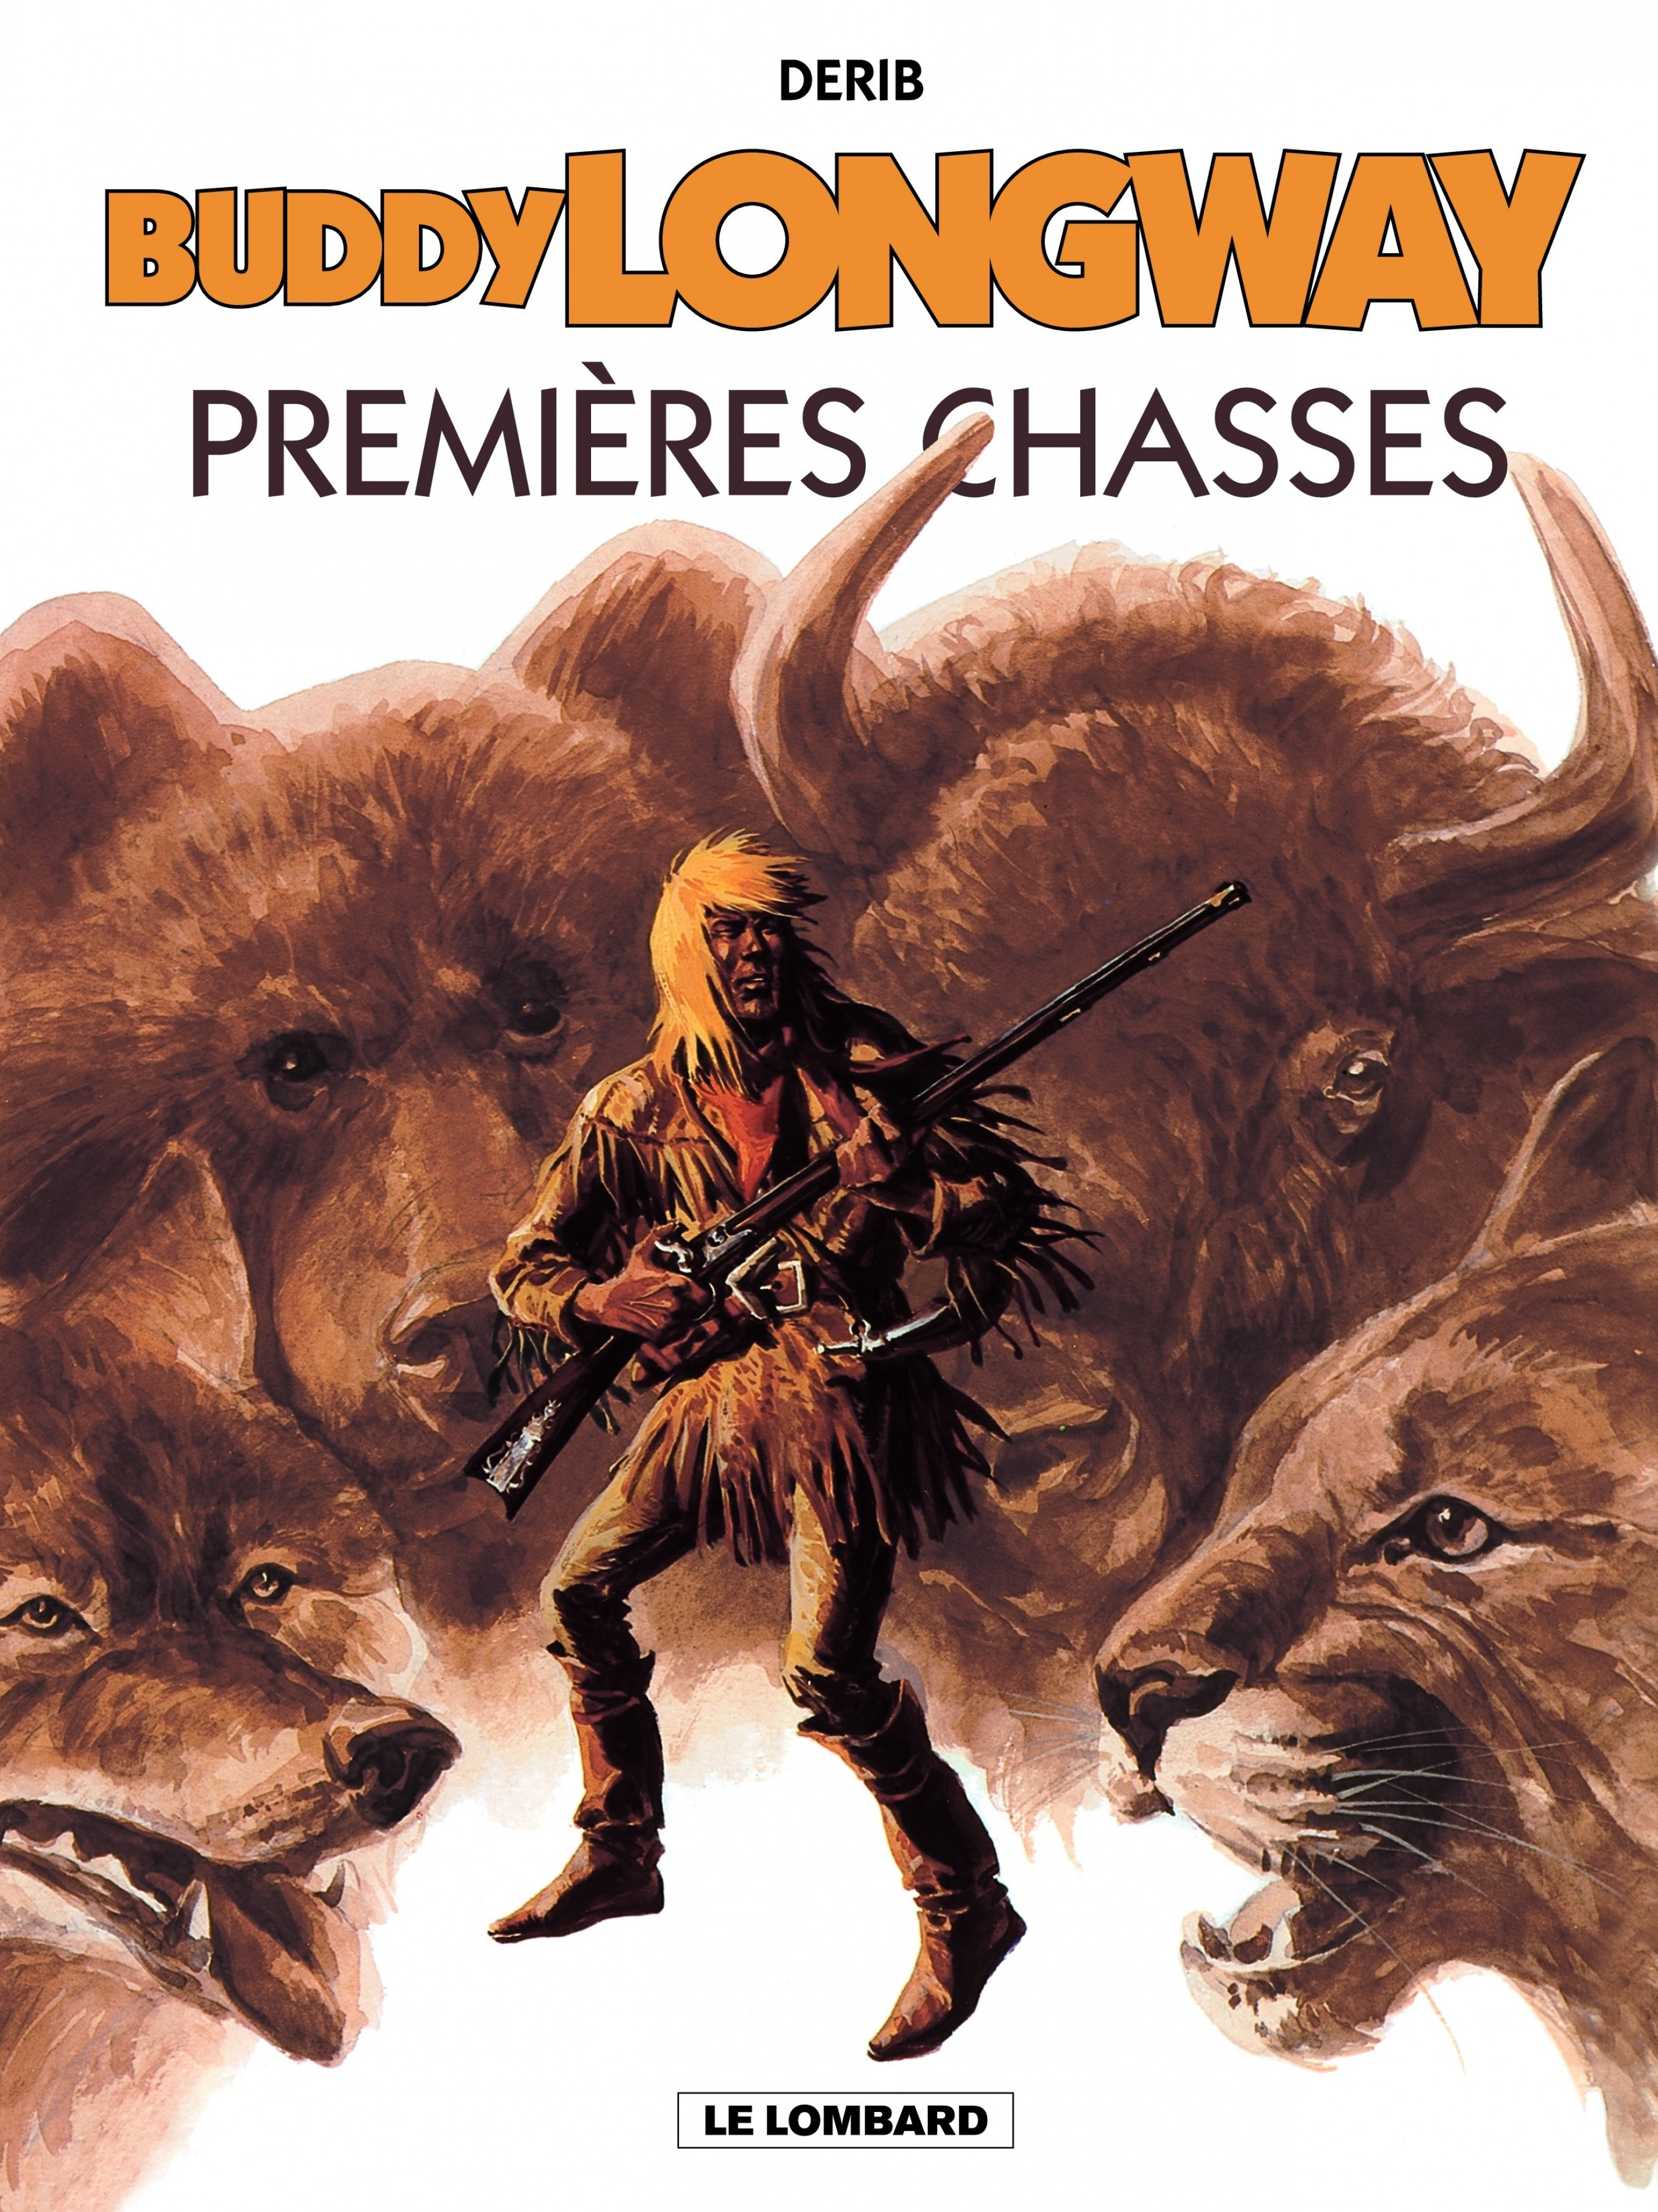 Buddy Longway - Tome 9 - Premières chasses